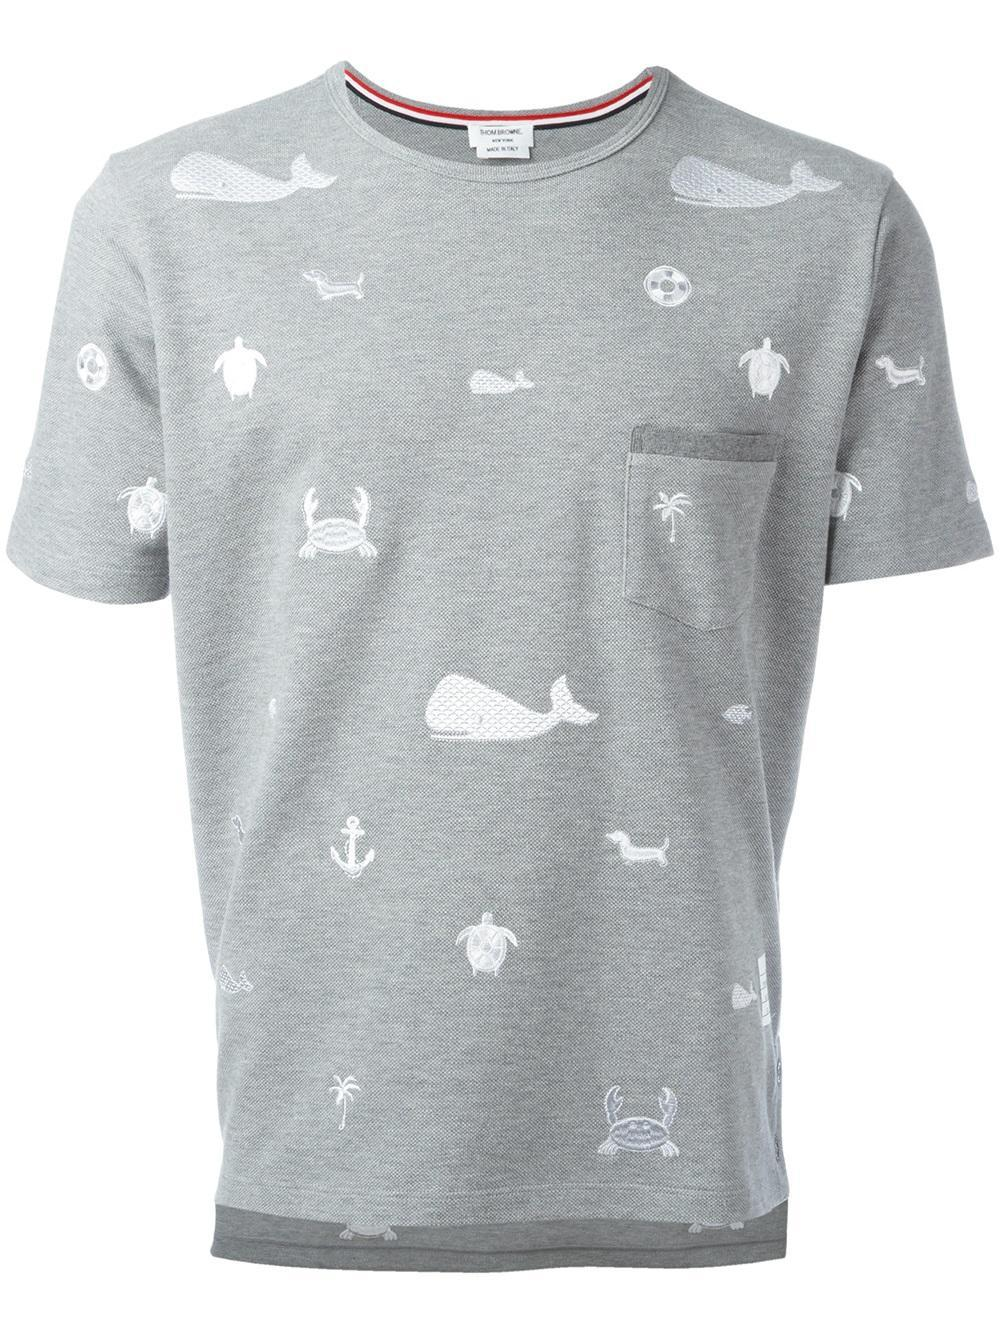 Thom browne embroidered pocket t shirt in gray for men lyst for Thom browne t shirt